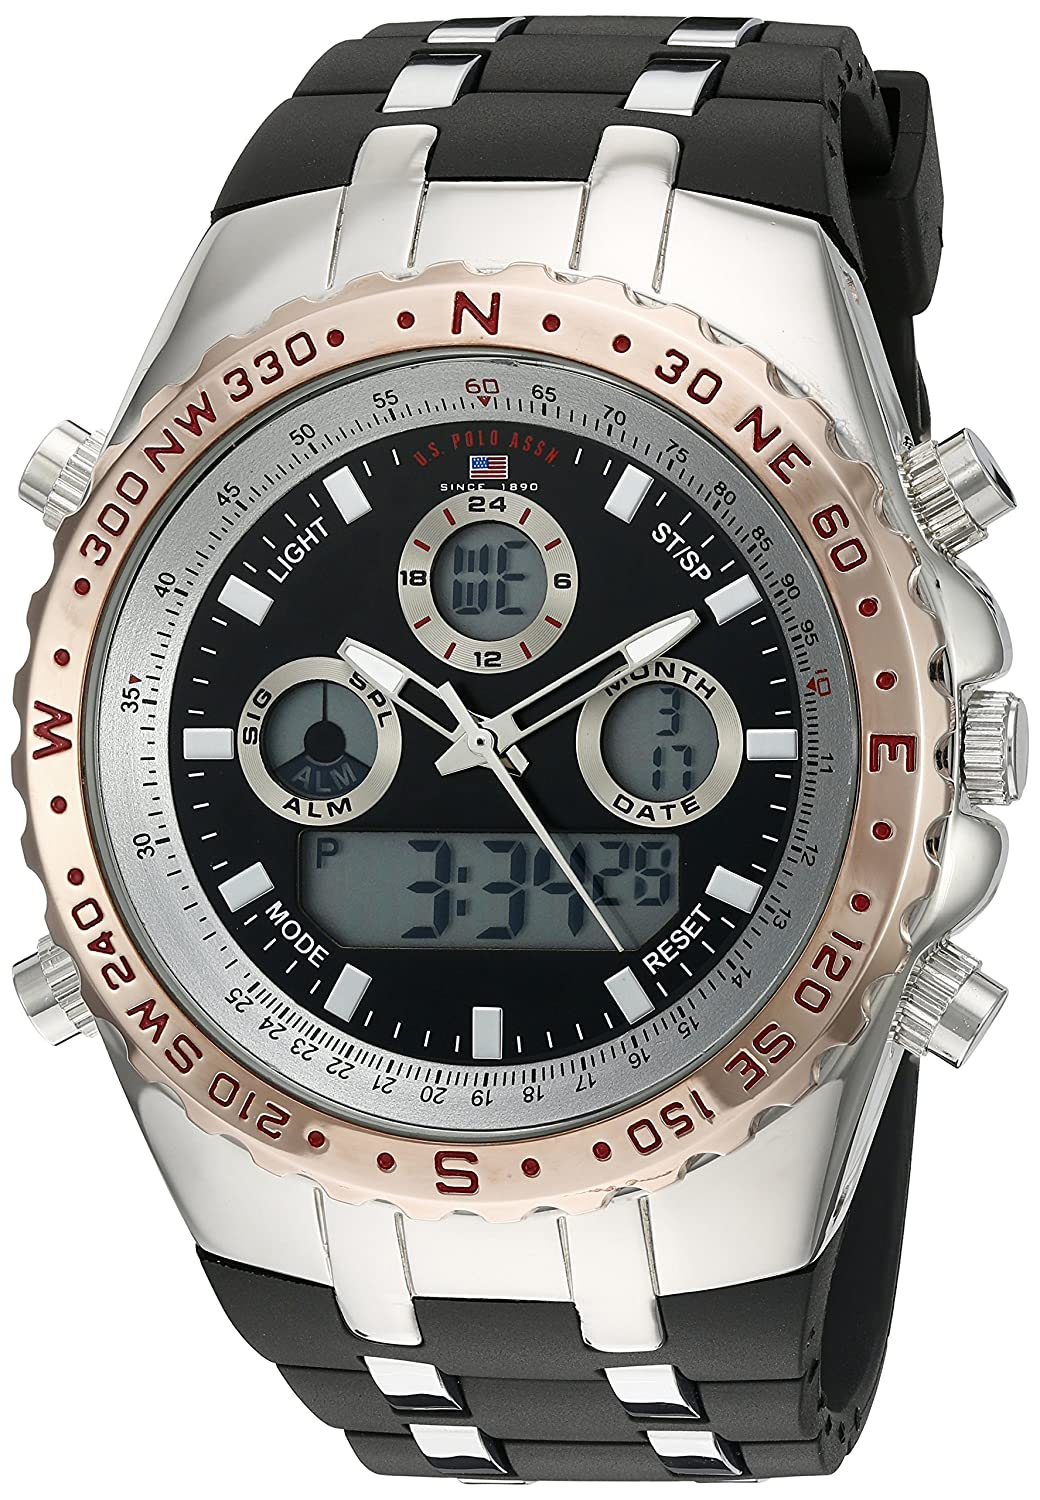 Reloj - U.S. Polo Assn. - para - US9373: Amazon.es: Relojes